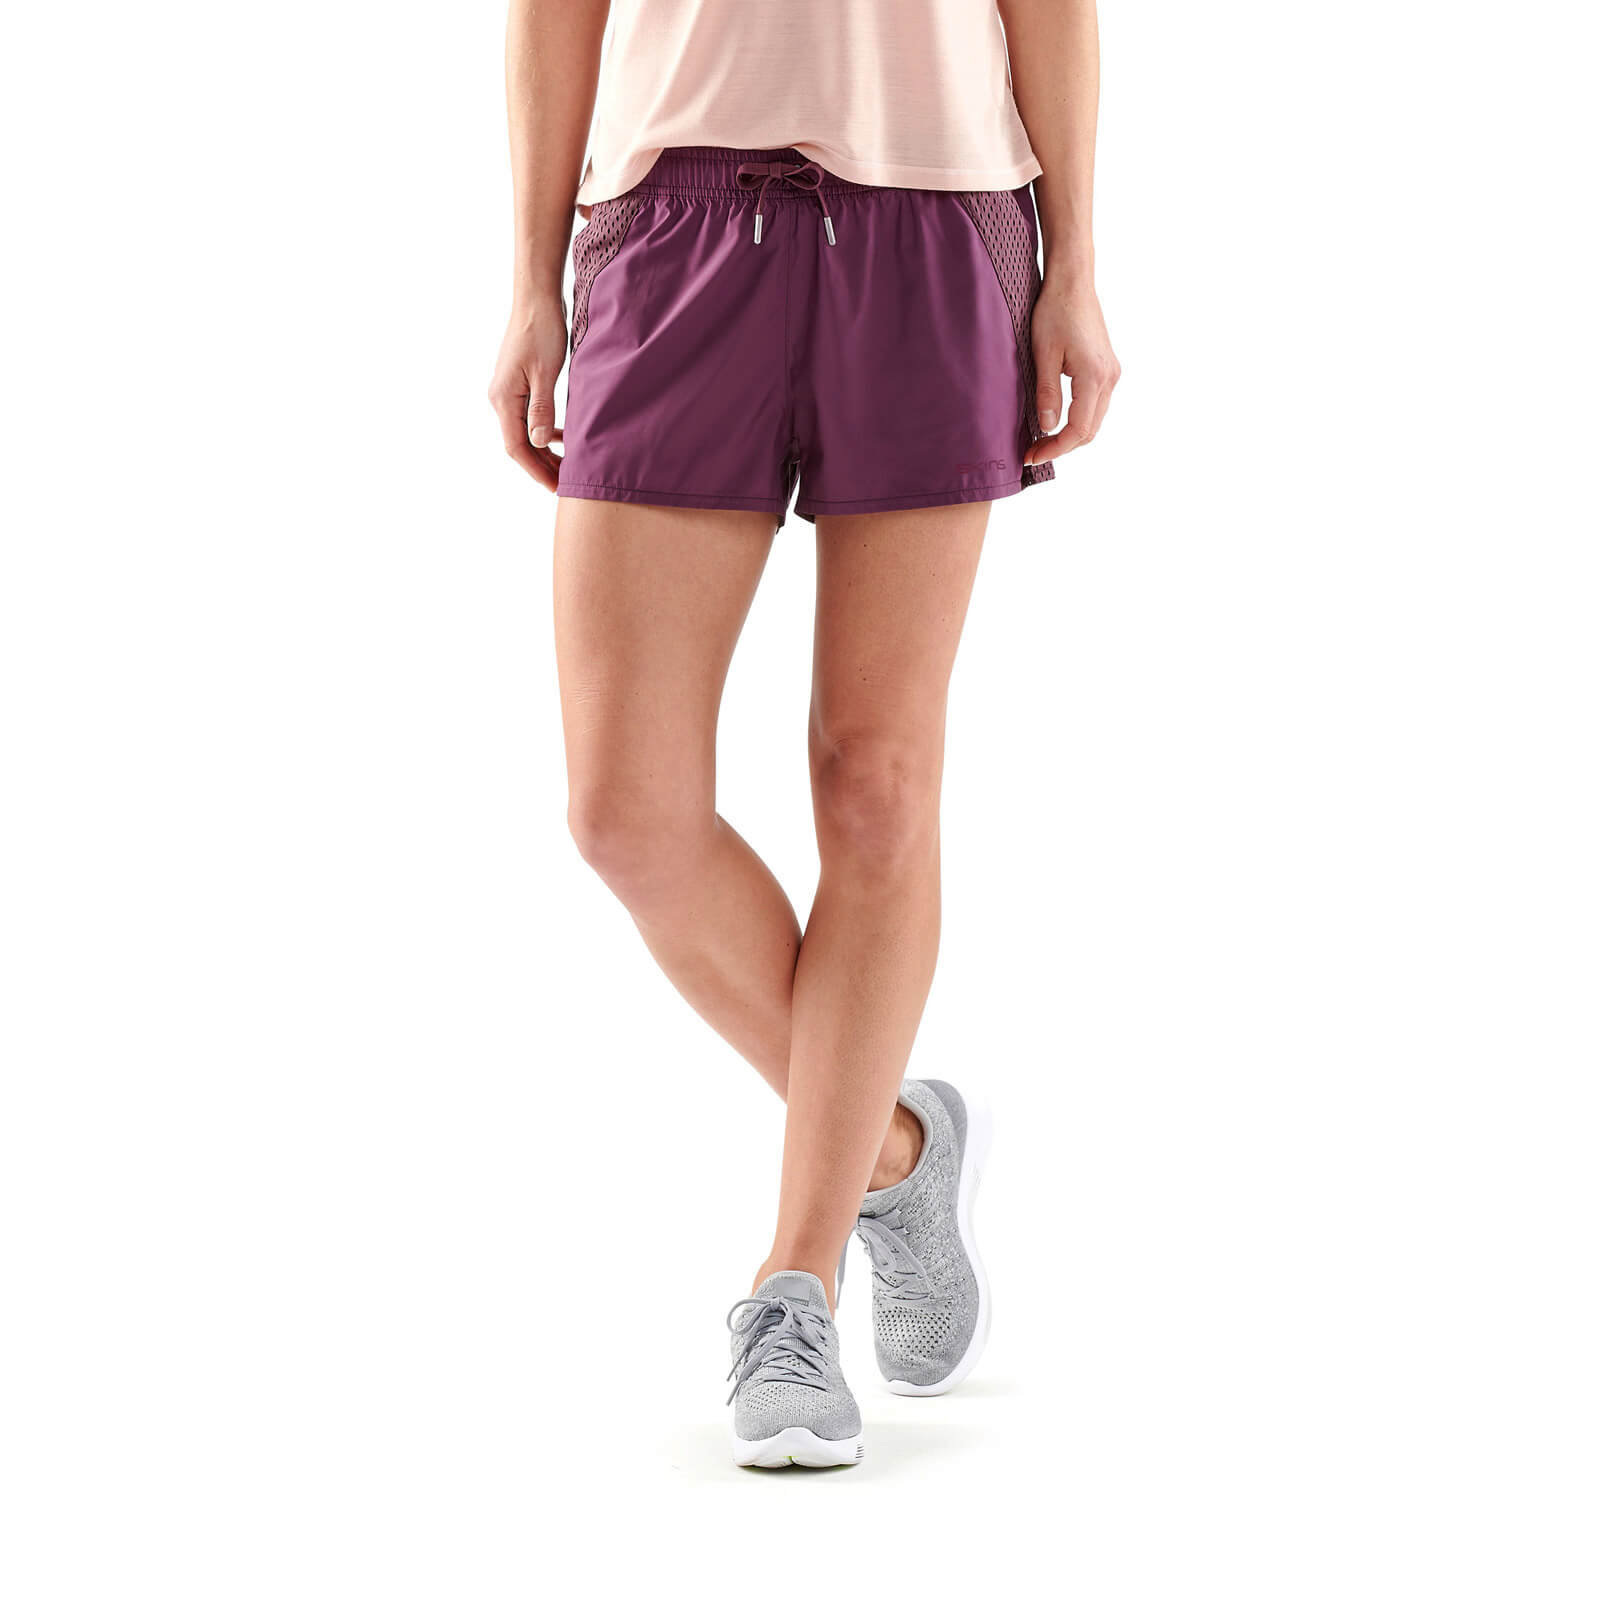 Skins Activewear Women